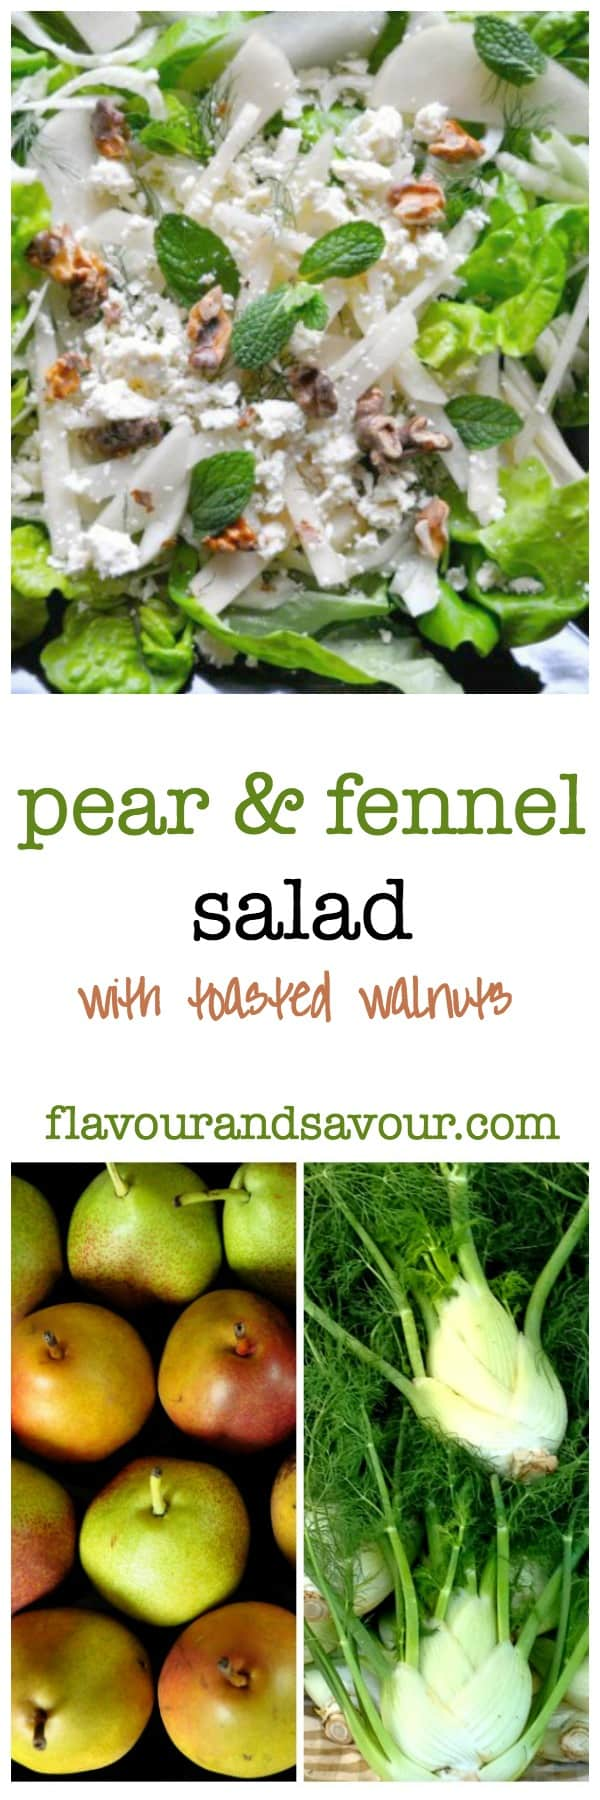 Pear and Fennel Salad with toasted walnuts and your choice of cheese. |www.flavourandsavour.com